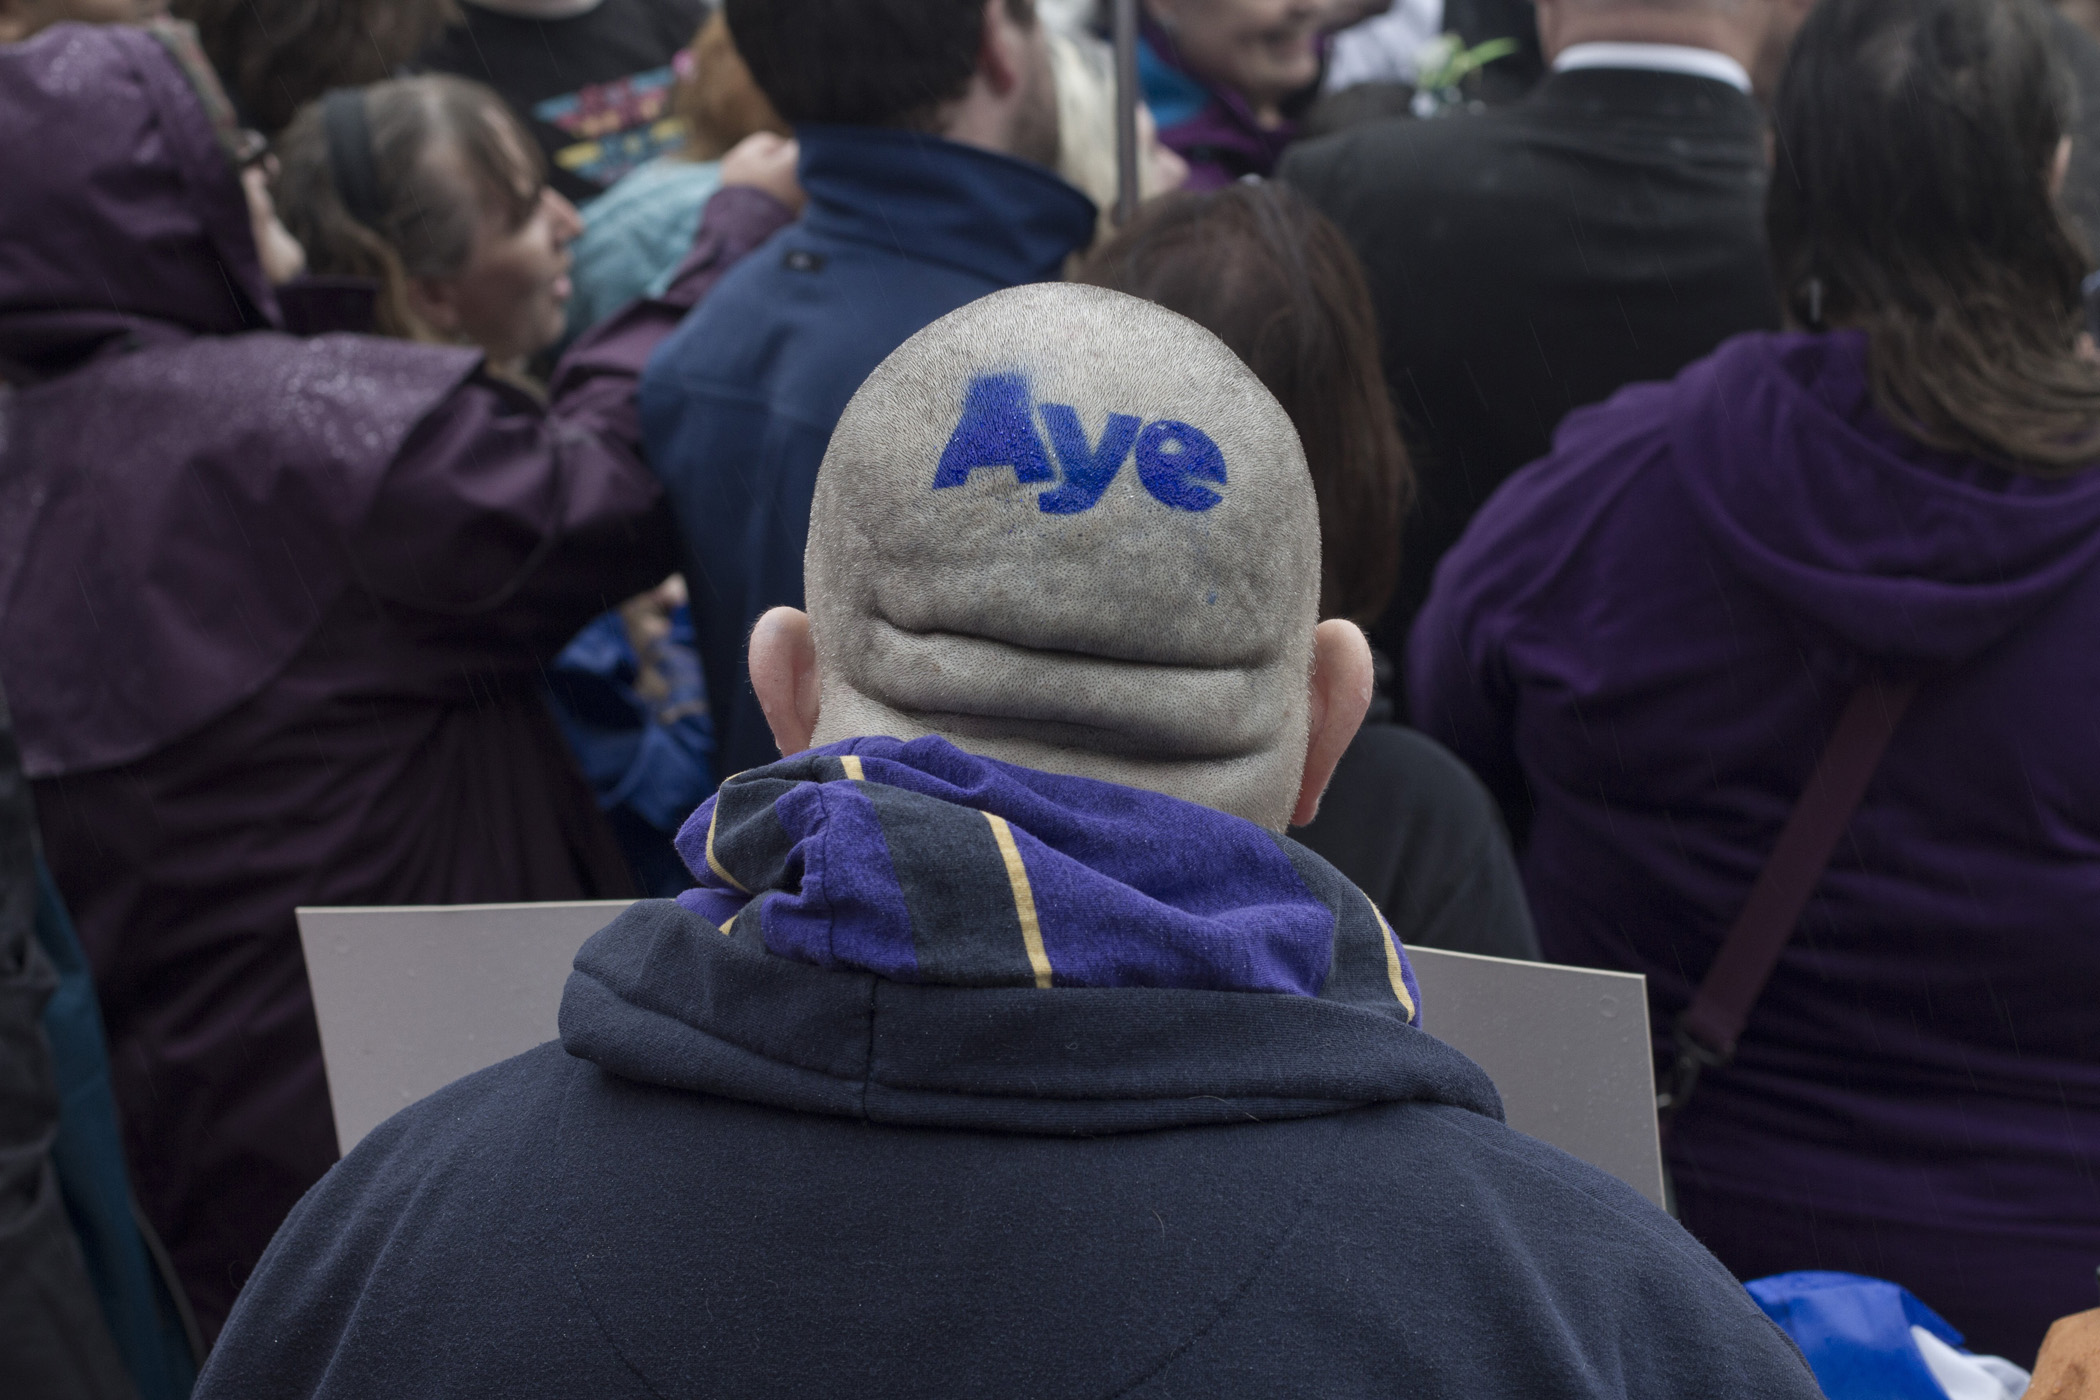 A pro-independence supporter with the word 'Aye' on his scalp pictured outside the Burgh Hall waiting the arrival of Scotland's First Minister Alex Salmond MSP who was on a visit to his home town of Linlithgow, West Lothian, Sept. 15, 2014.